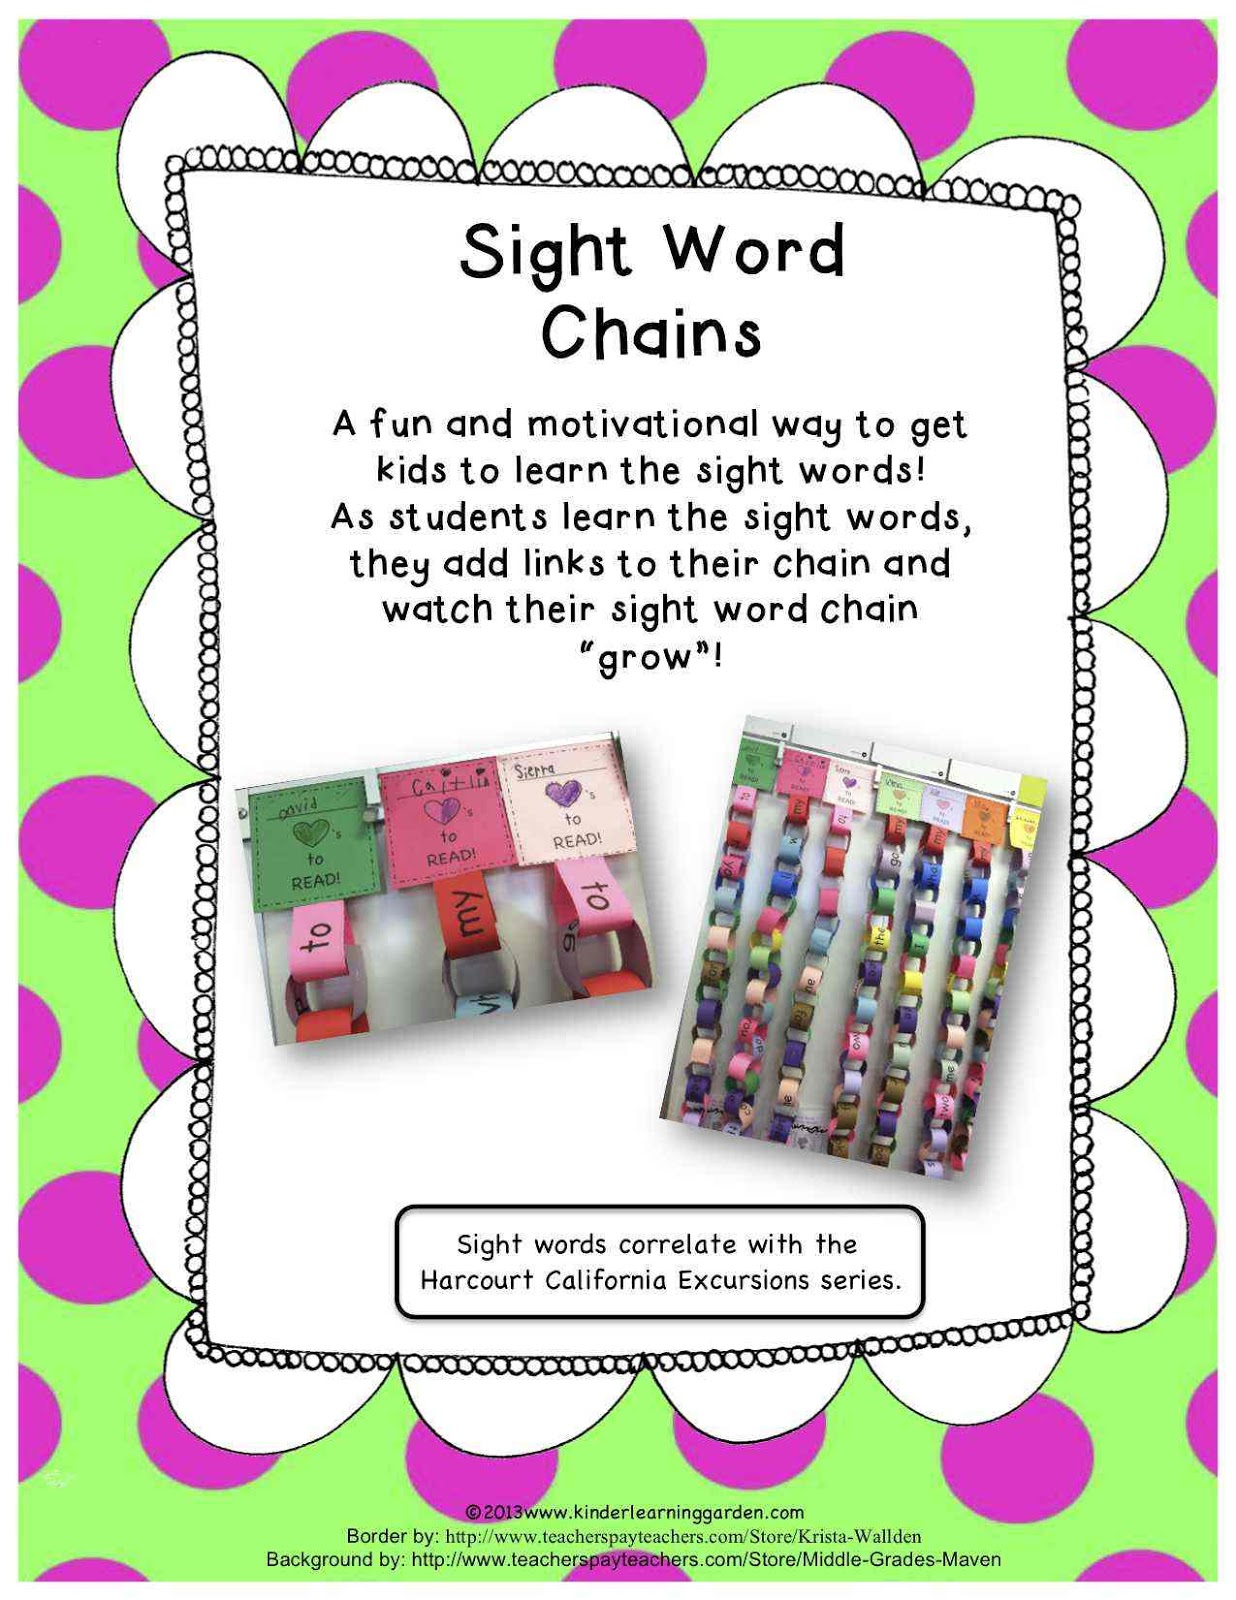 Kinder Learning Garden: Sight Word Chains